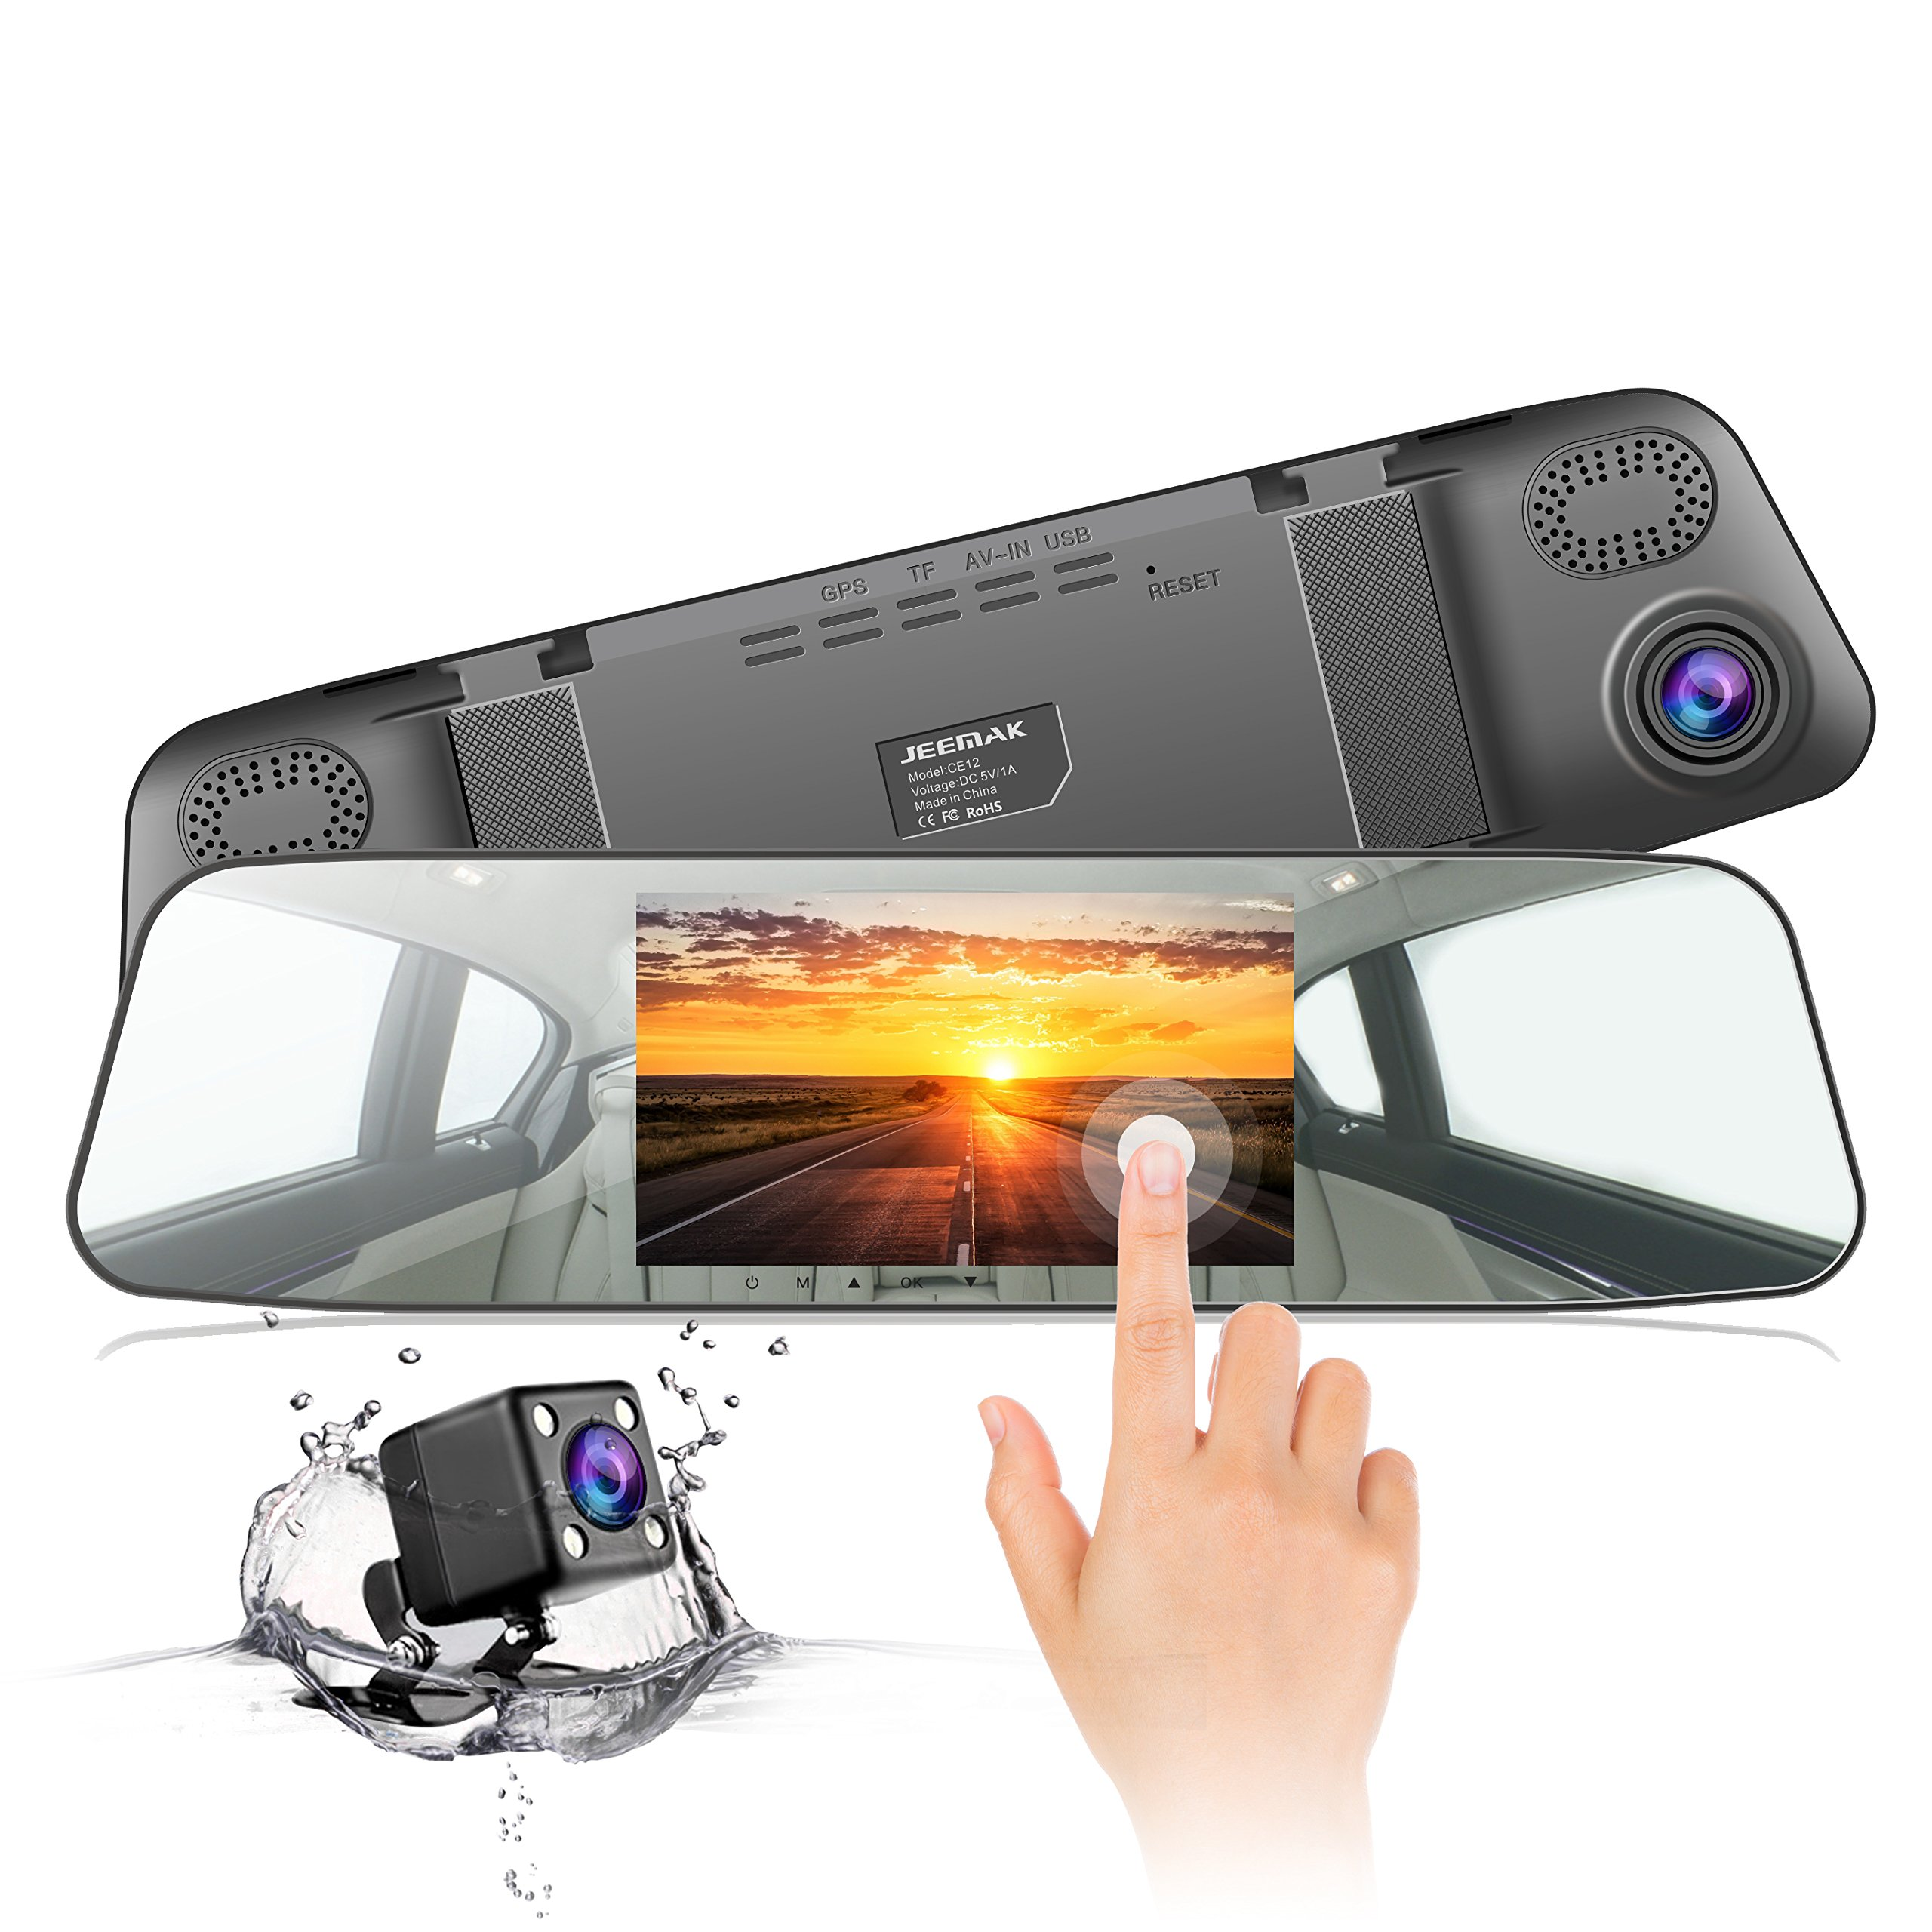 Mirror Dash Cam 1080P Dual Lens IPS Touch Screen, JEEMAK 170° Wide Angle Truck Rearview Dash Camera Vehicle Recorder Car DVR with Parking Monitor WDR Loop Recording